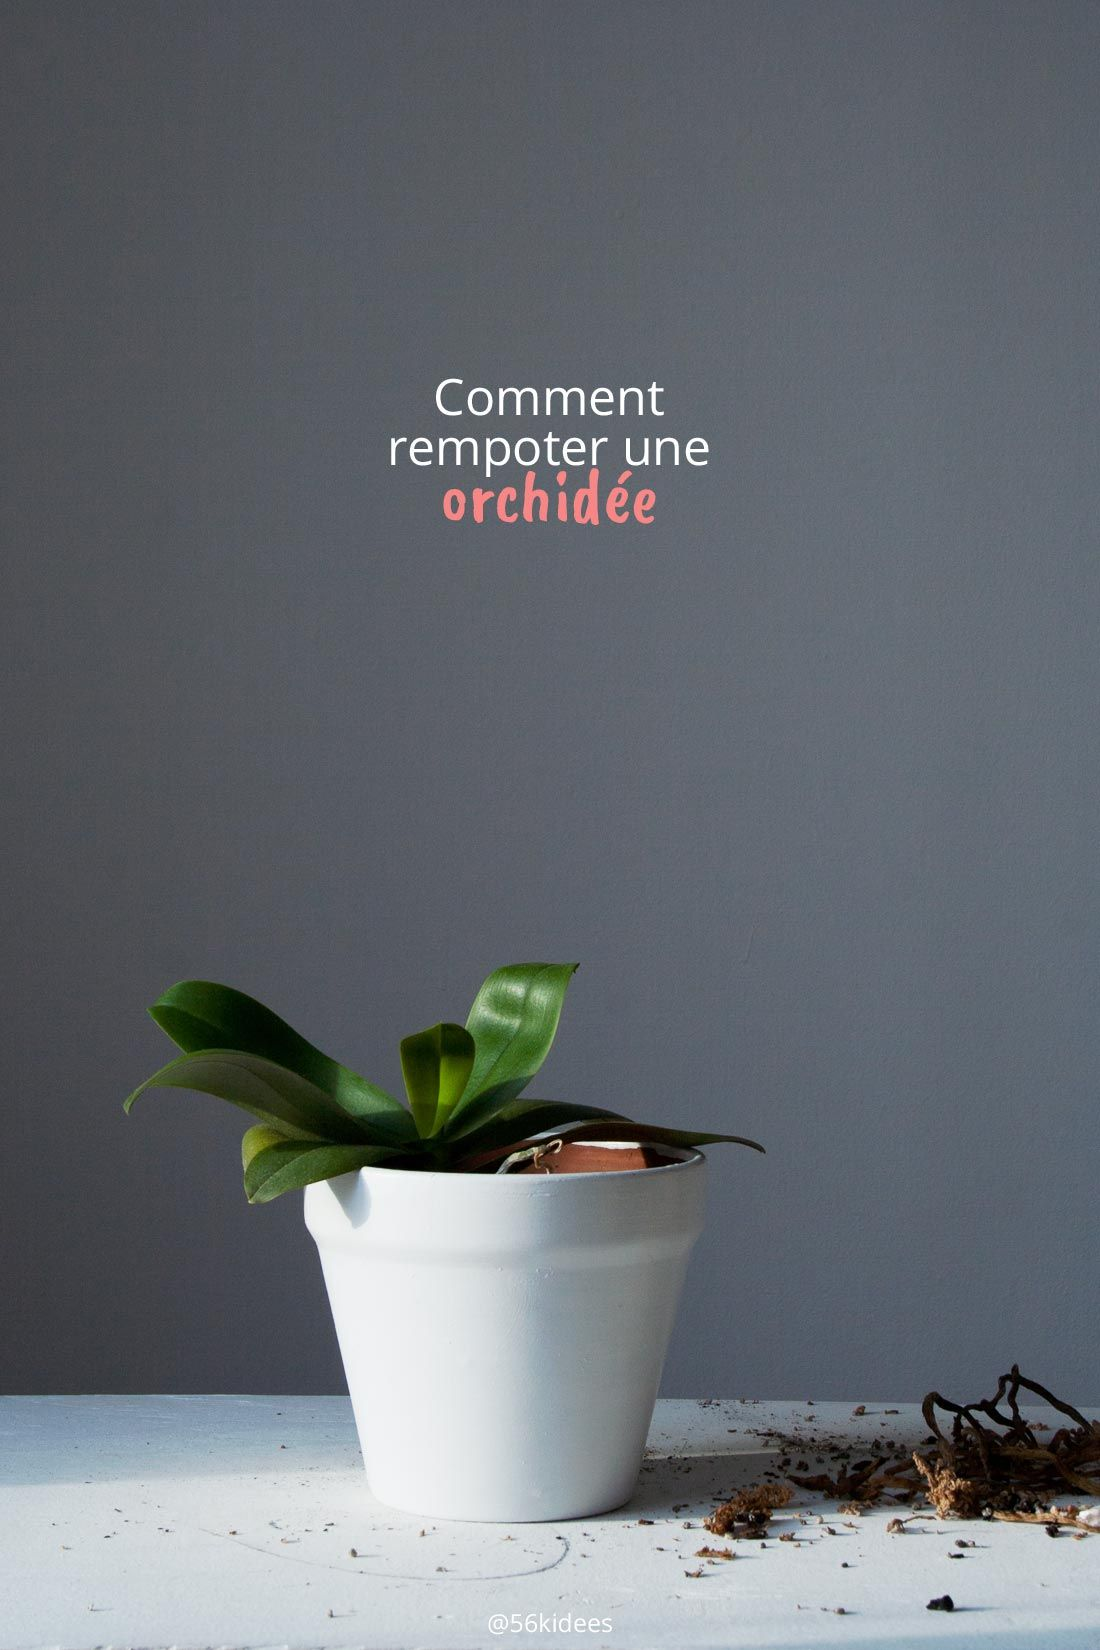 Comment Rempoter Une Orchidee Rempoter Orchidee Orchidee Et